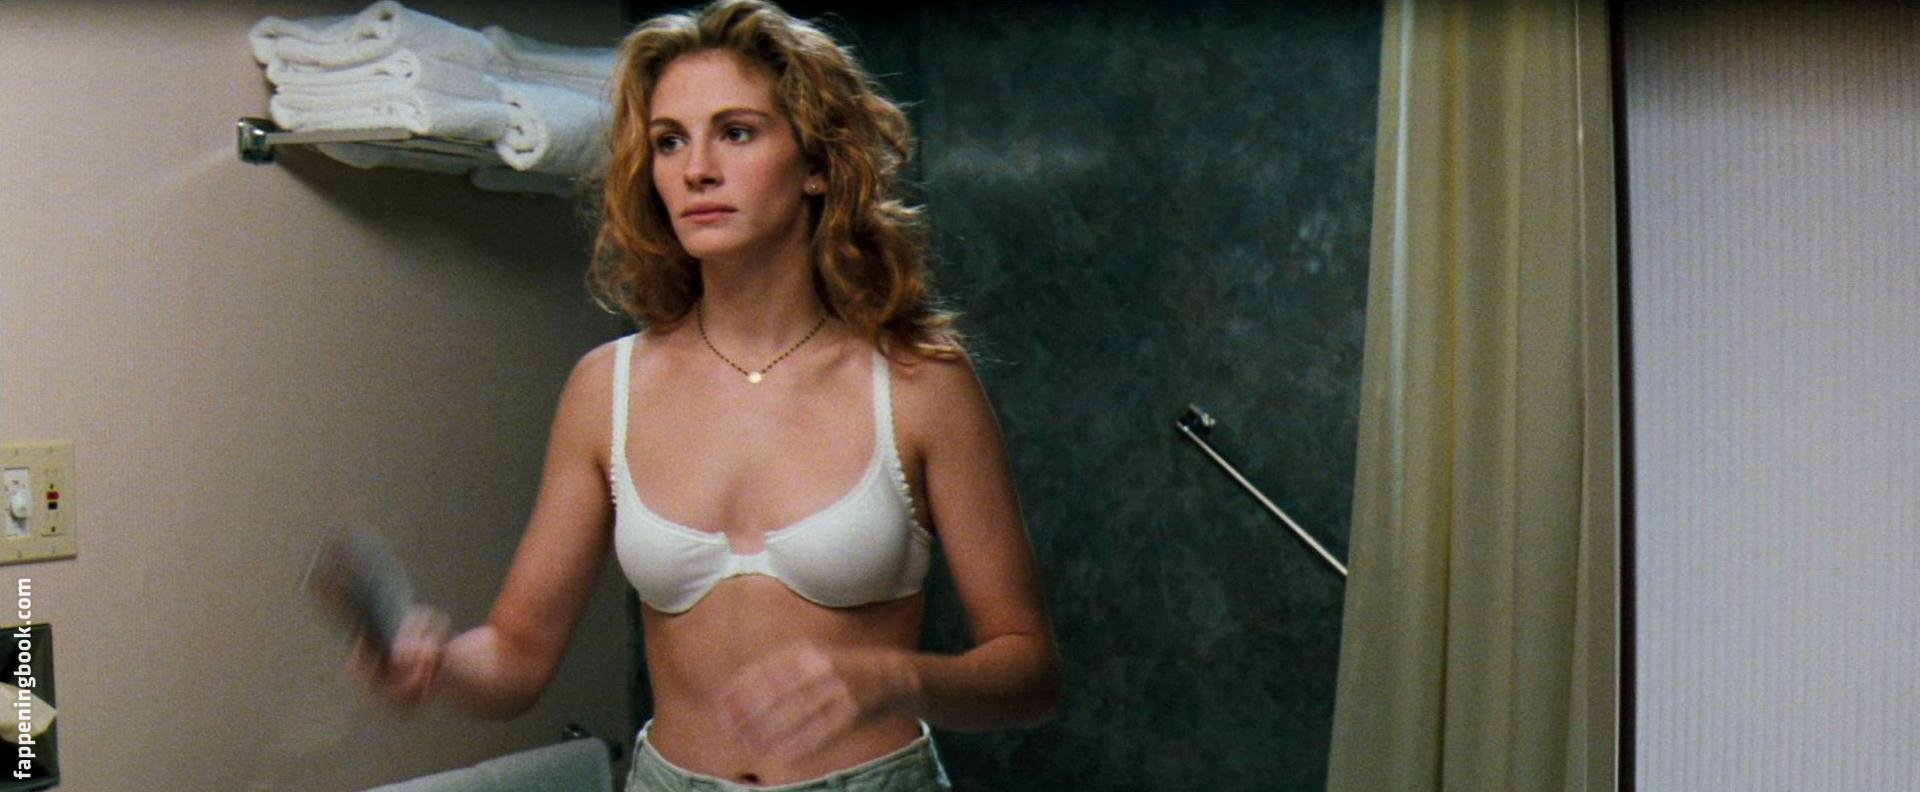 Julia Roberts Nude Sexy The Fappening Uncensored Photo